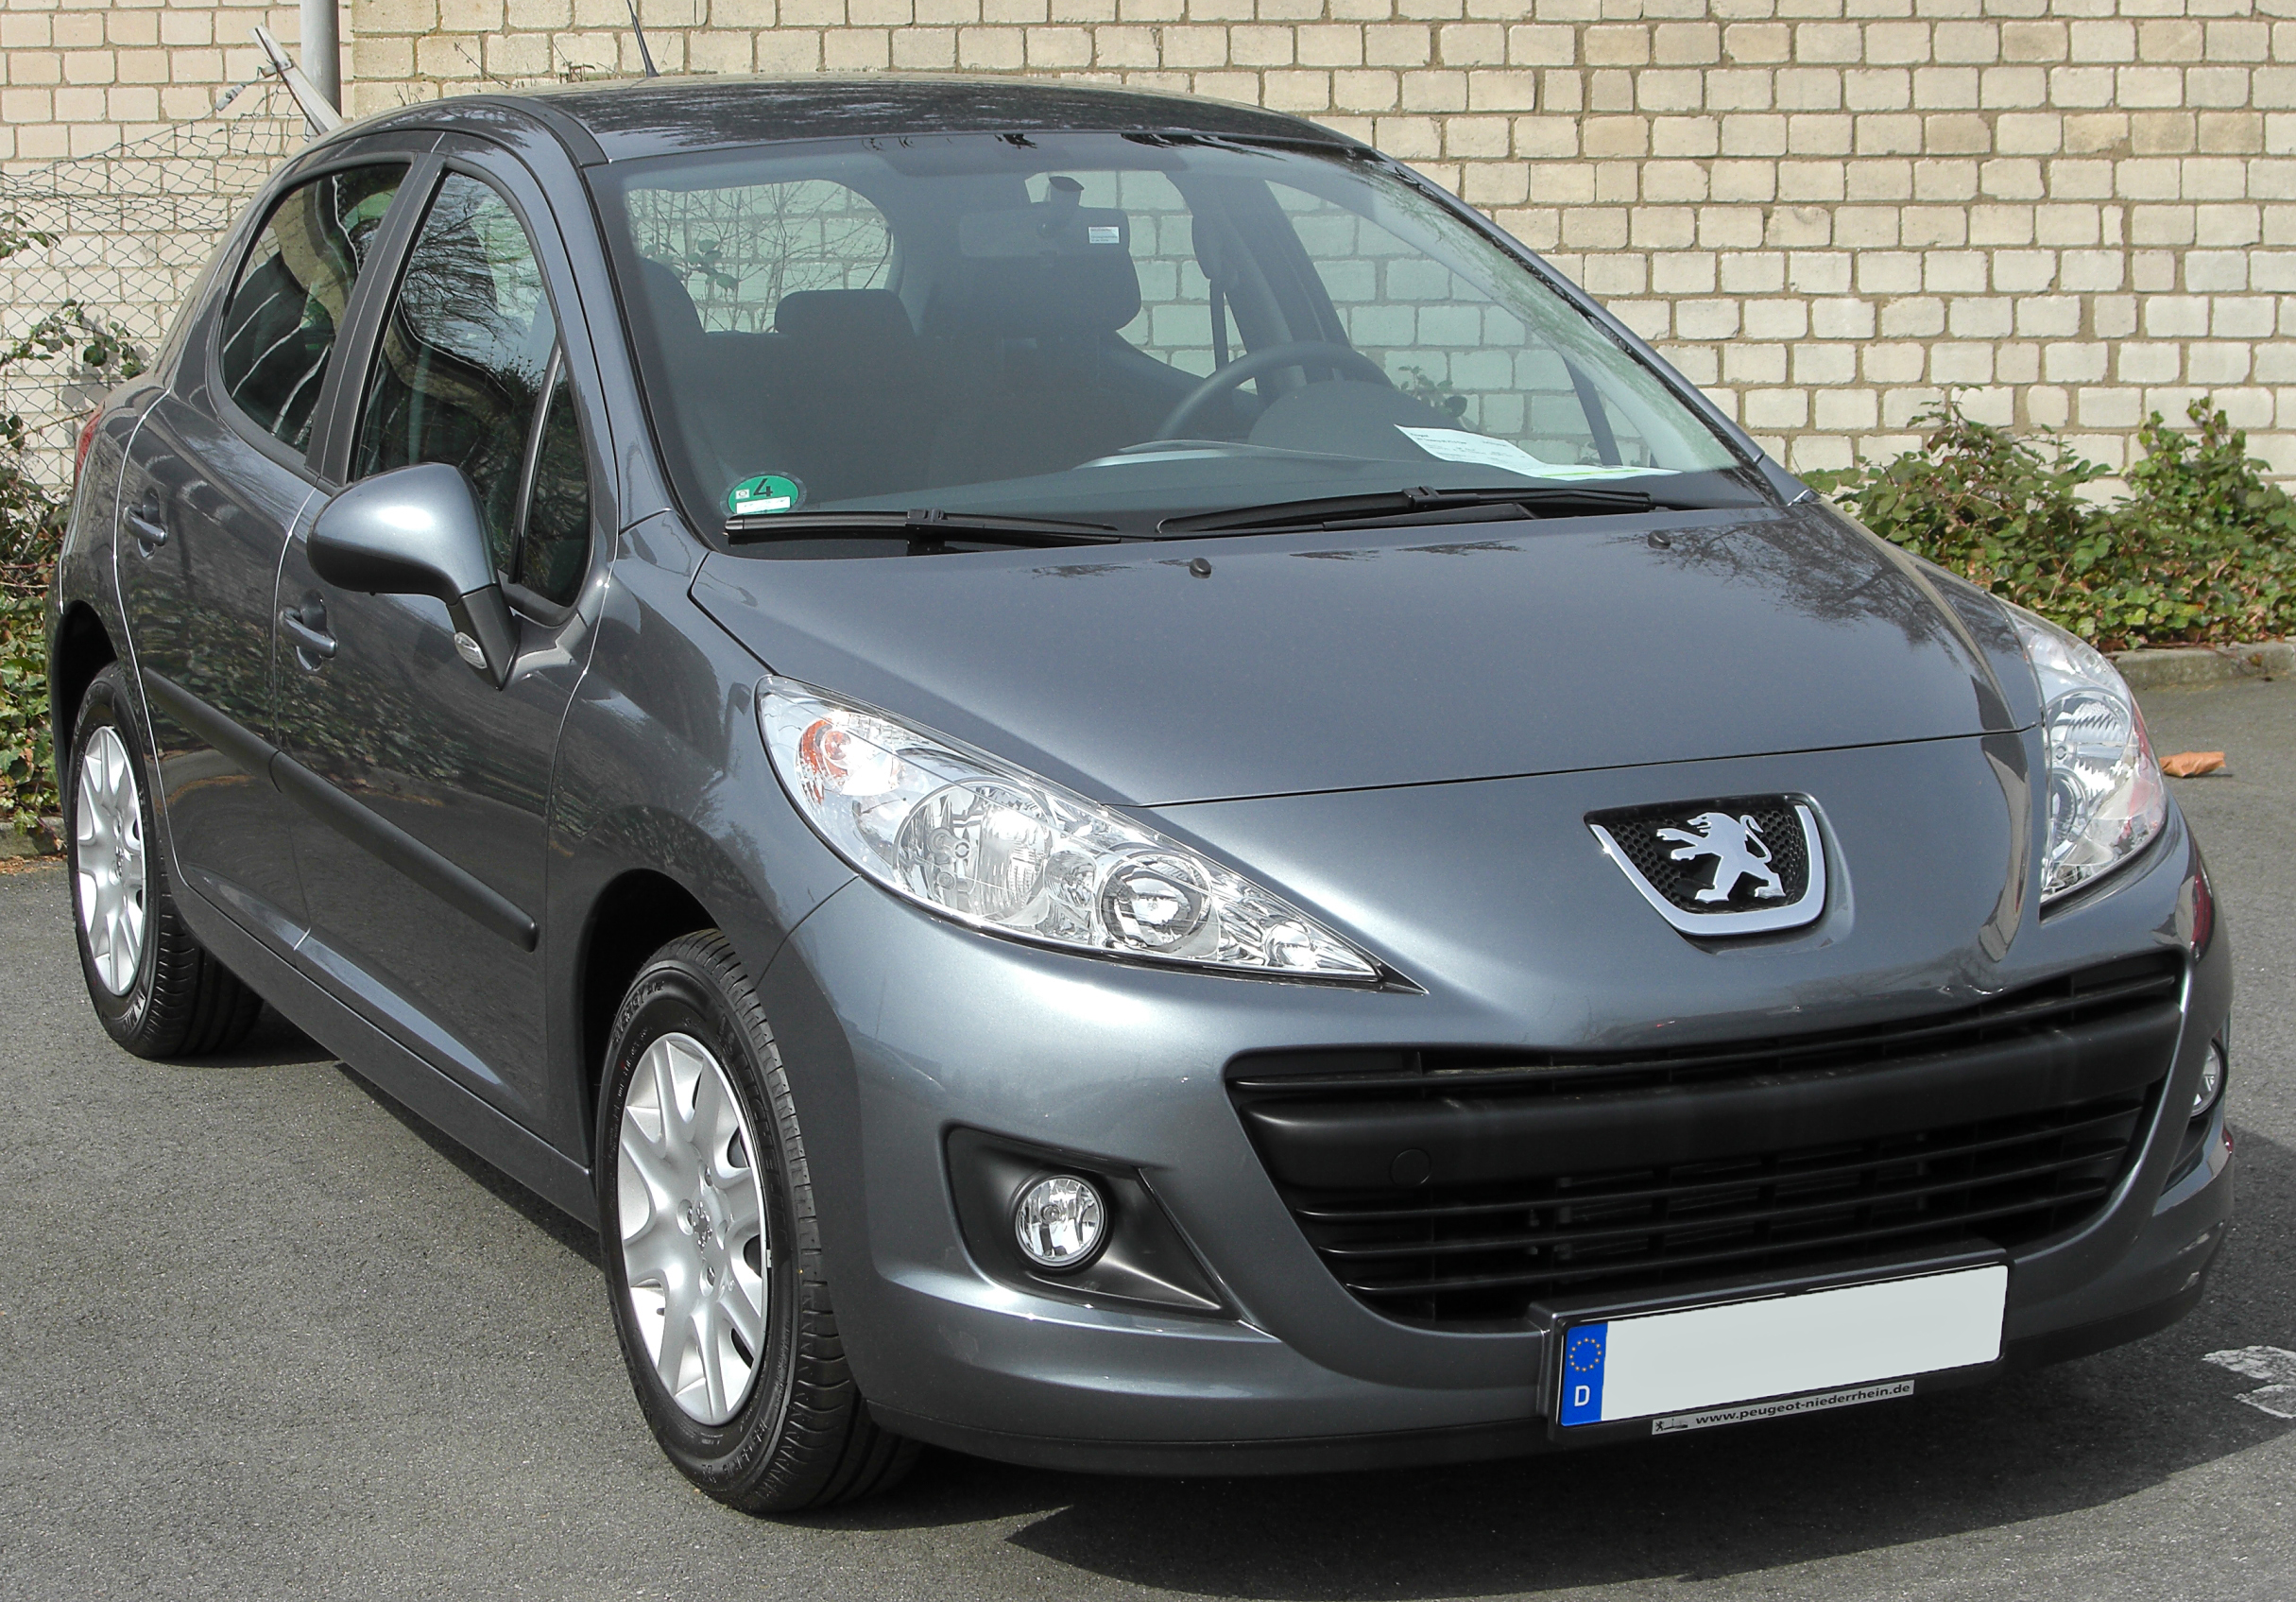 file peugeot 207 facelift front wikimedia commons. Black Bedroom Furniture Sets. Home Design Ideas